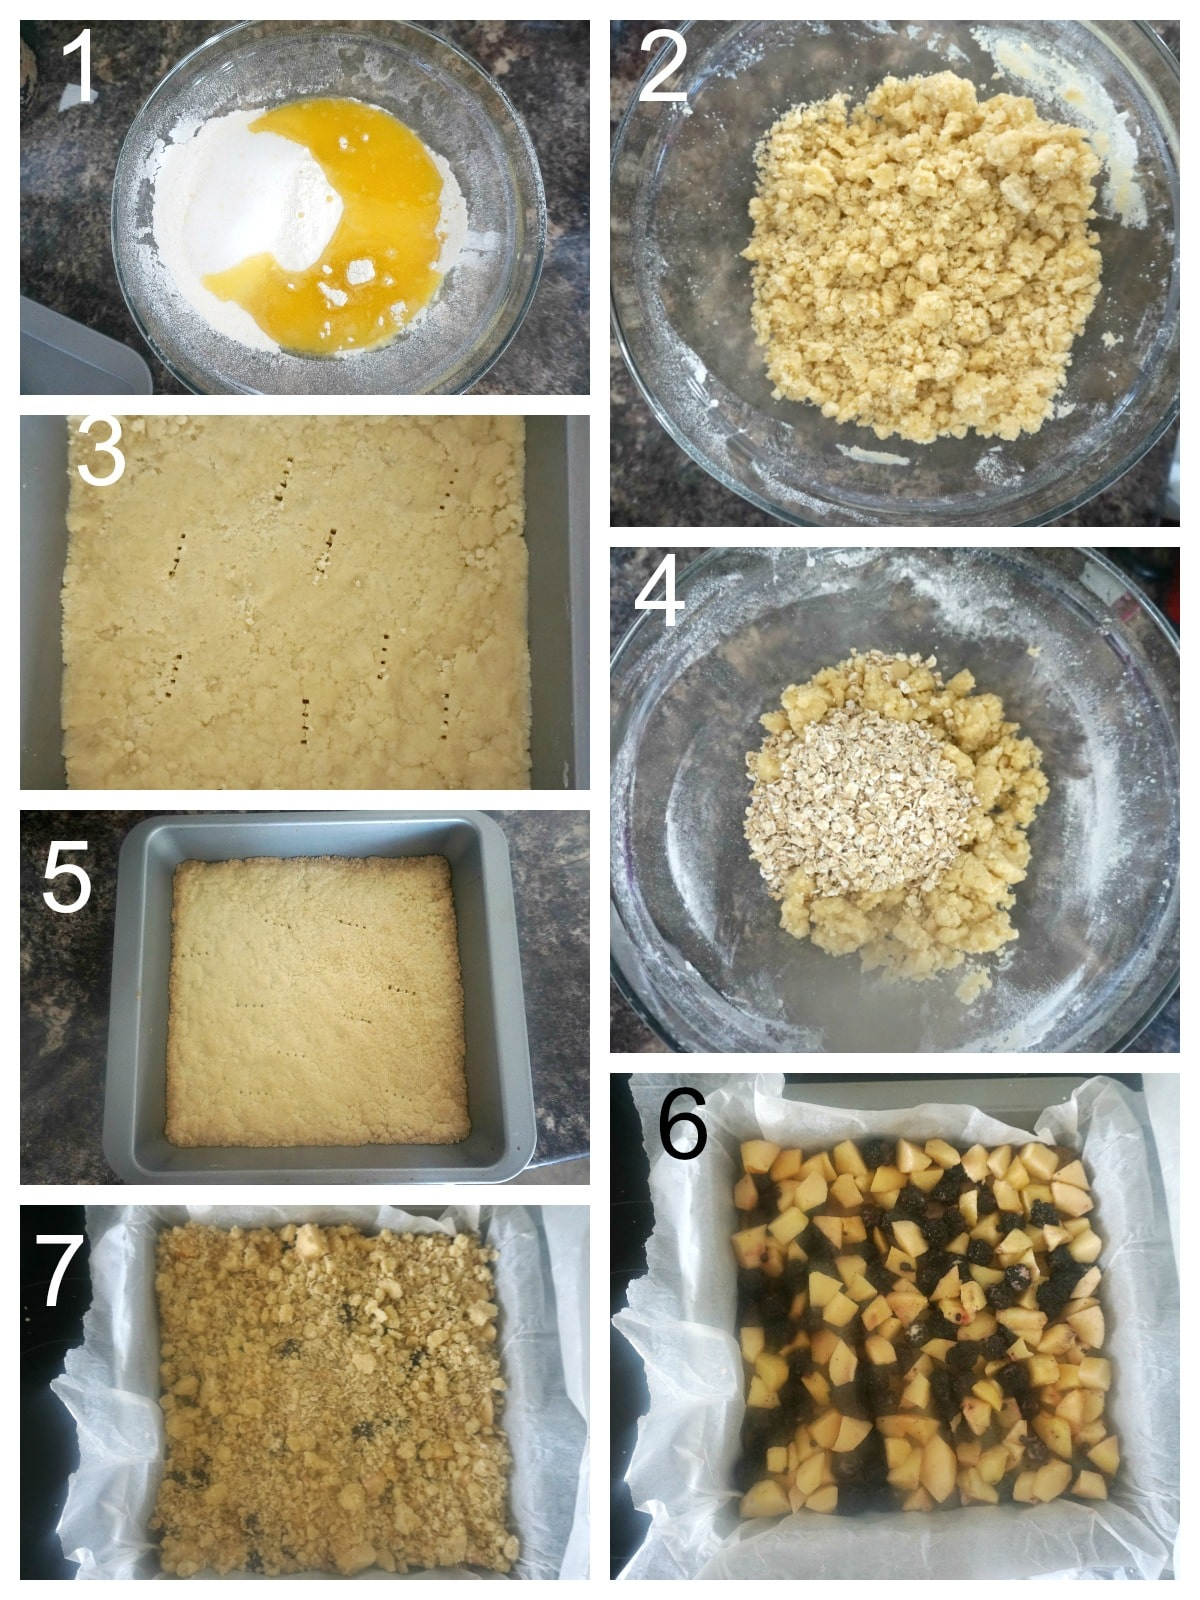 Collage of 7 photos to show how to make the crumble mixture for the bars